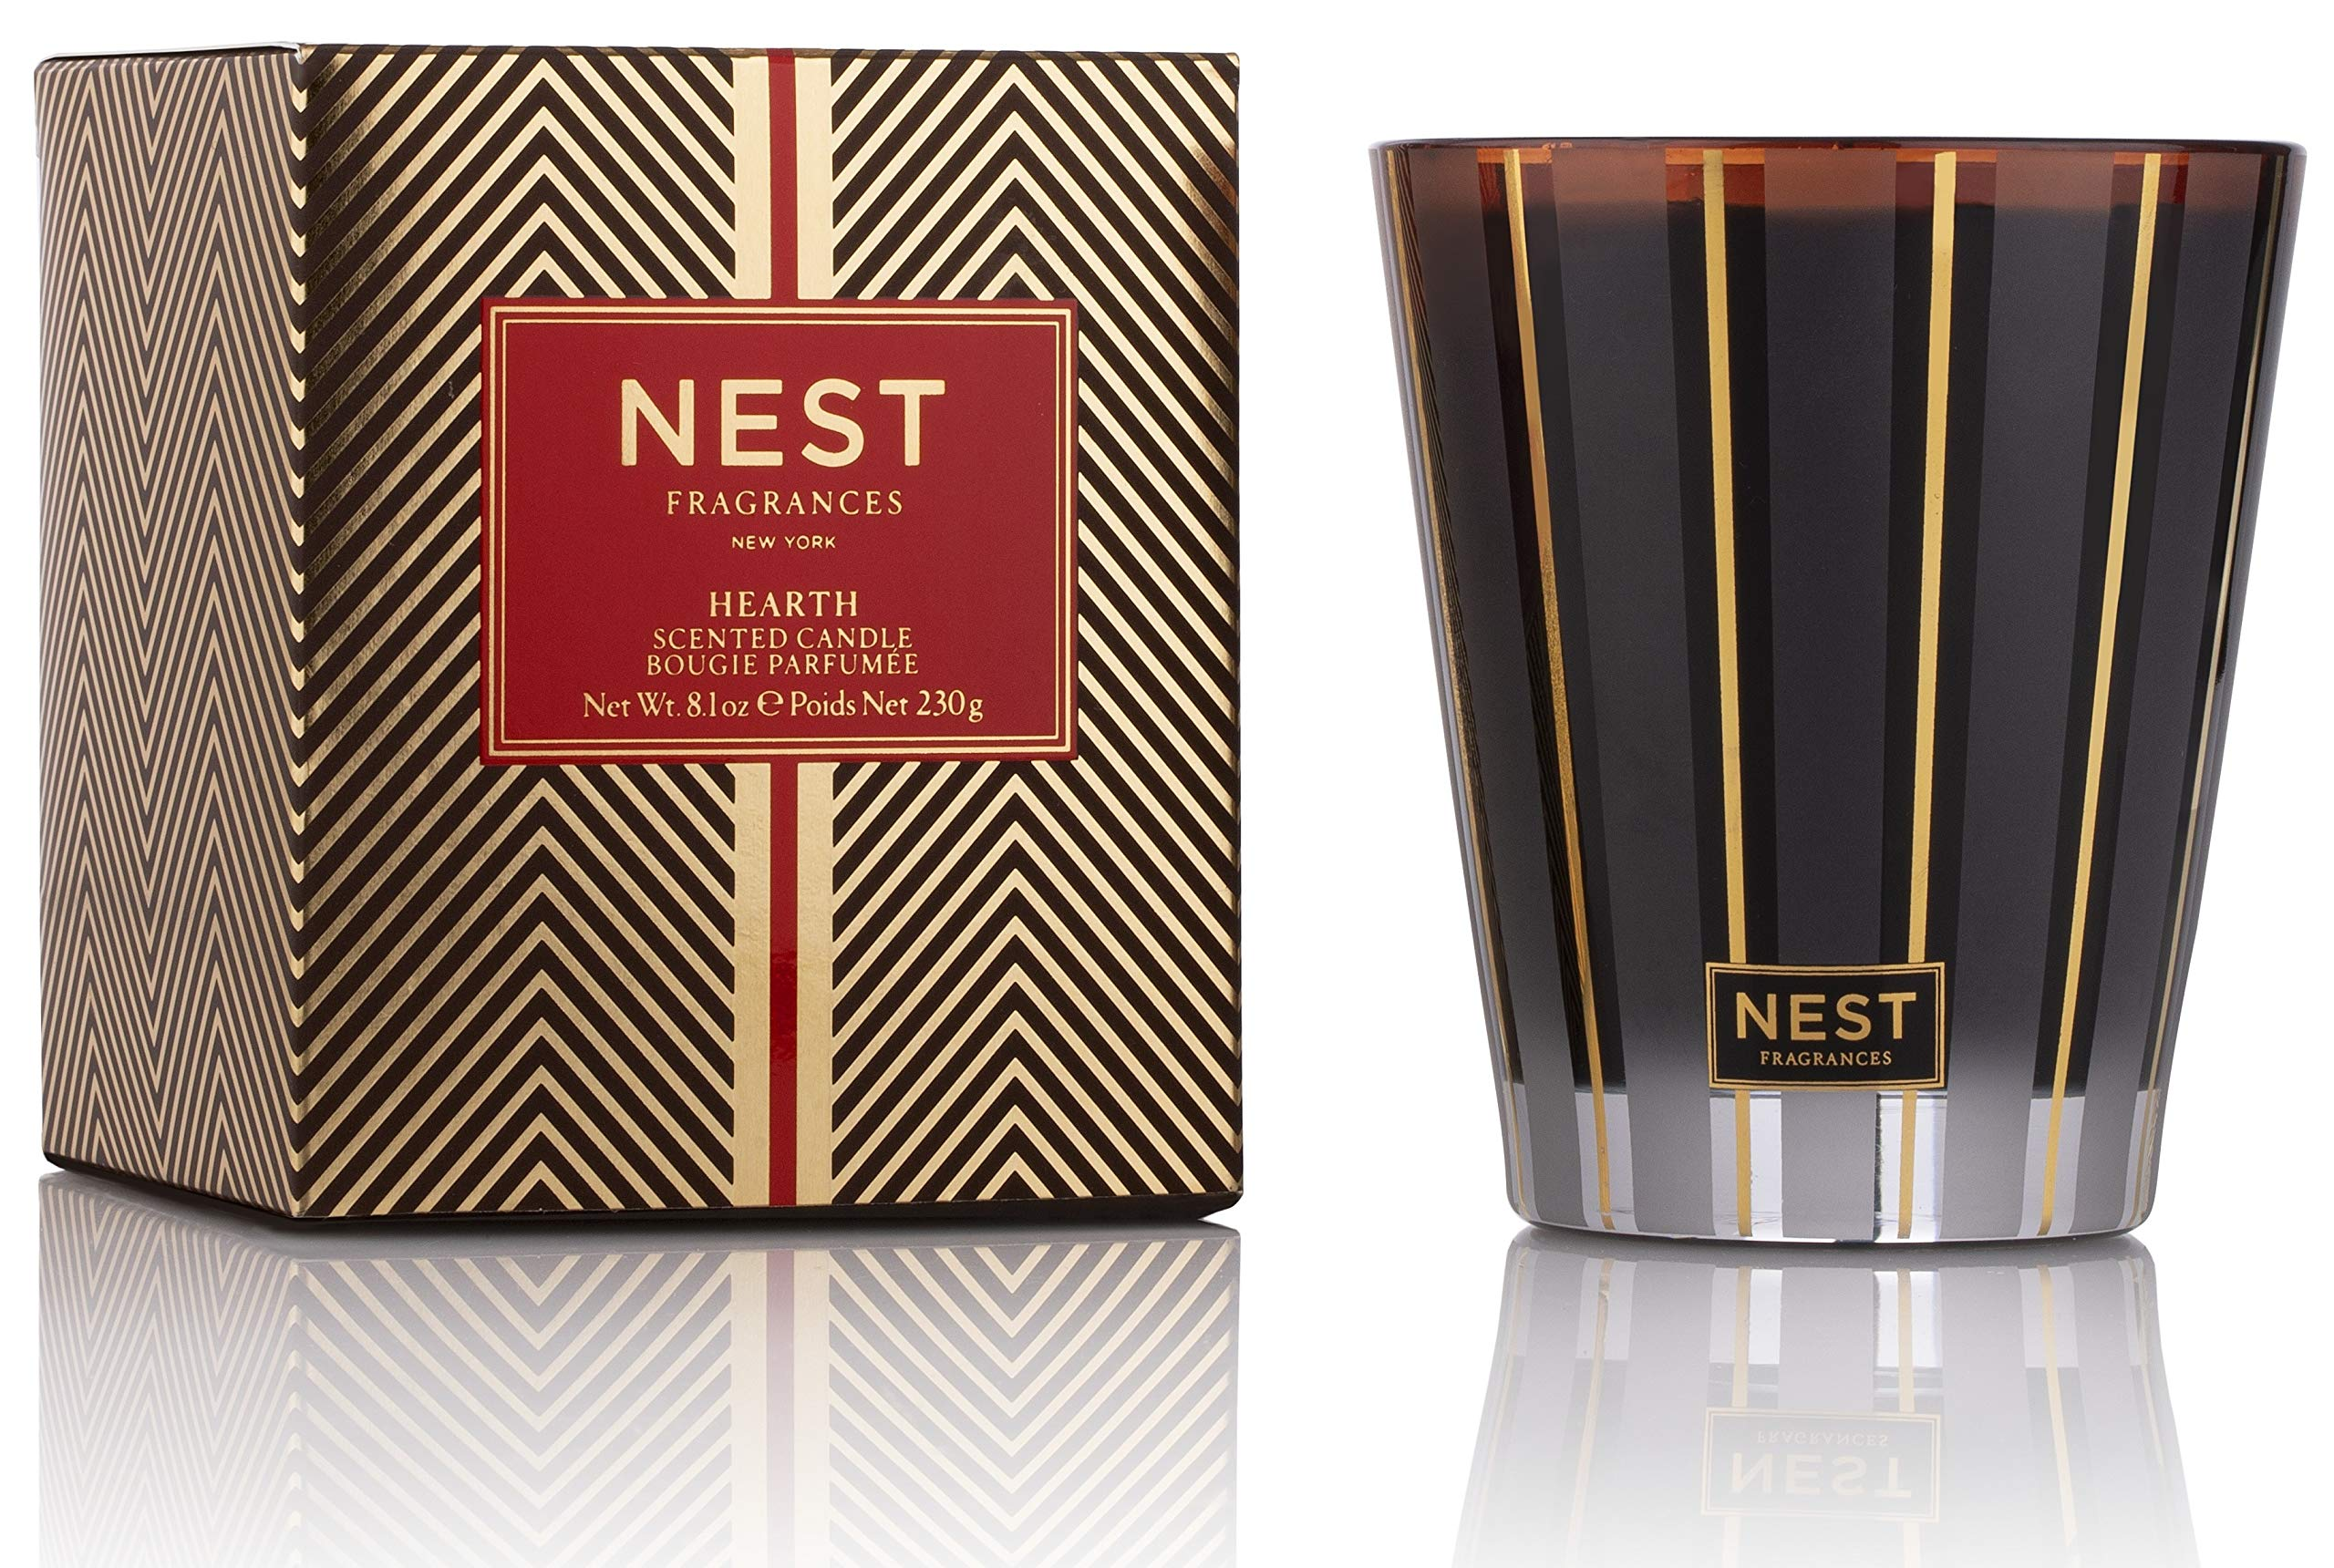 NEST Fragrances Classic Candle- Hearth, 8.1 oz by NEST Fragrances